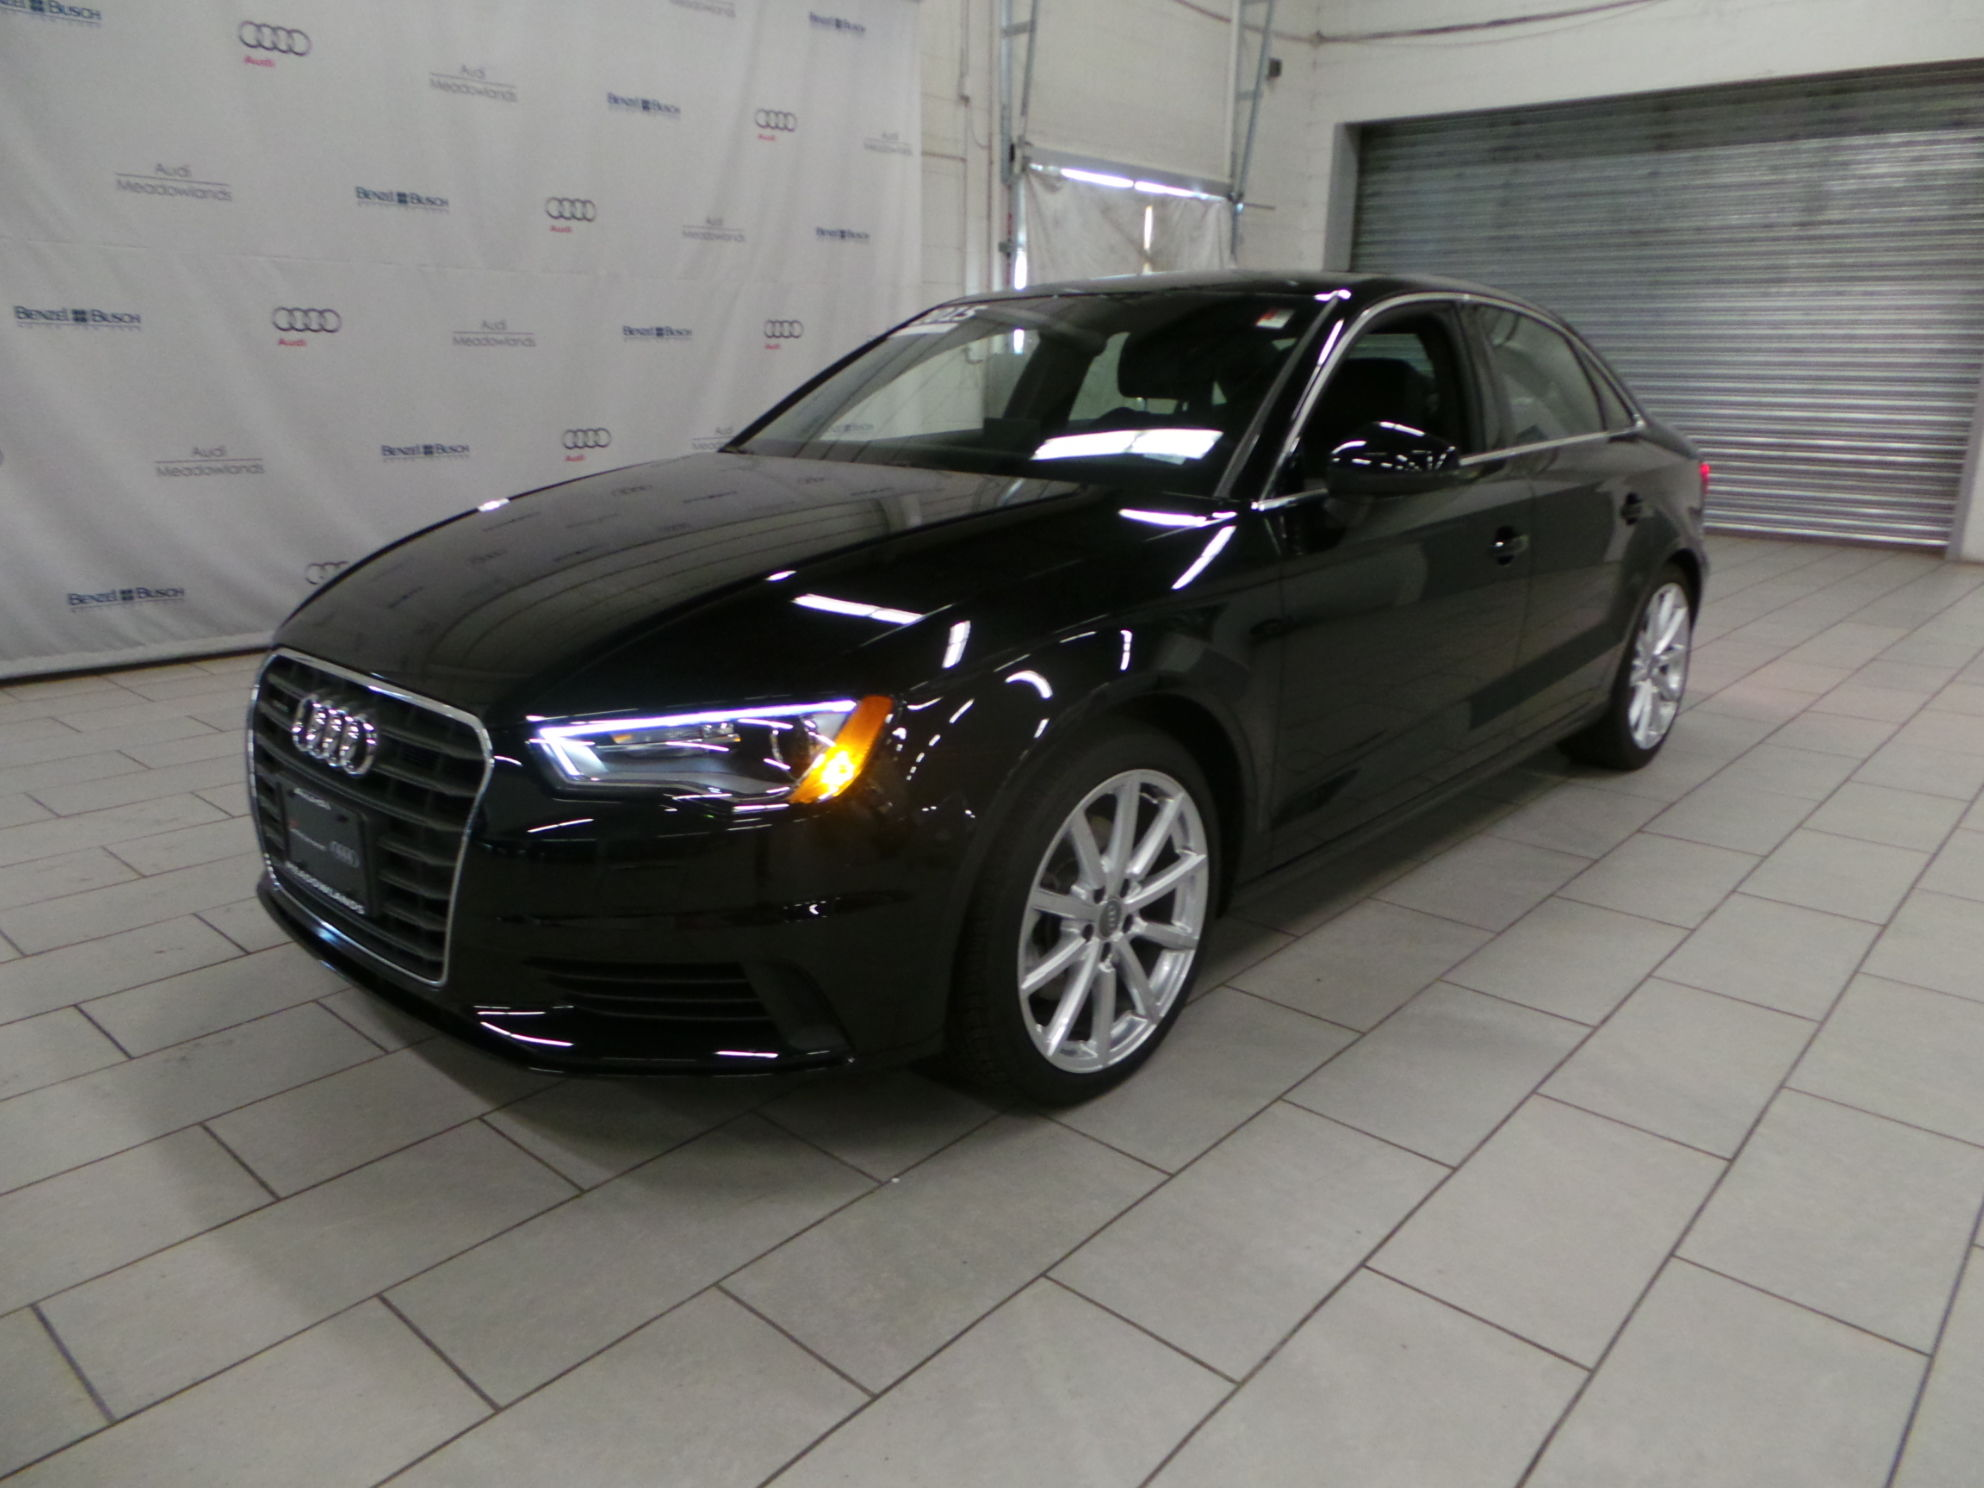 If you call in and mention our listing from audi world you can receive an additional 500 off this car